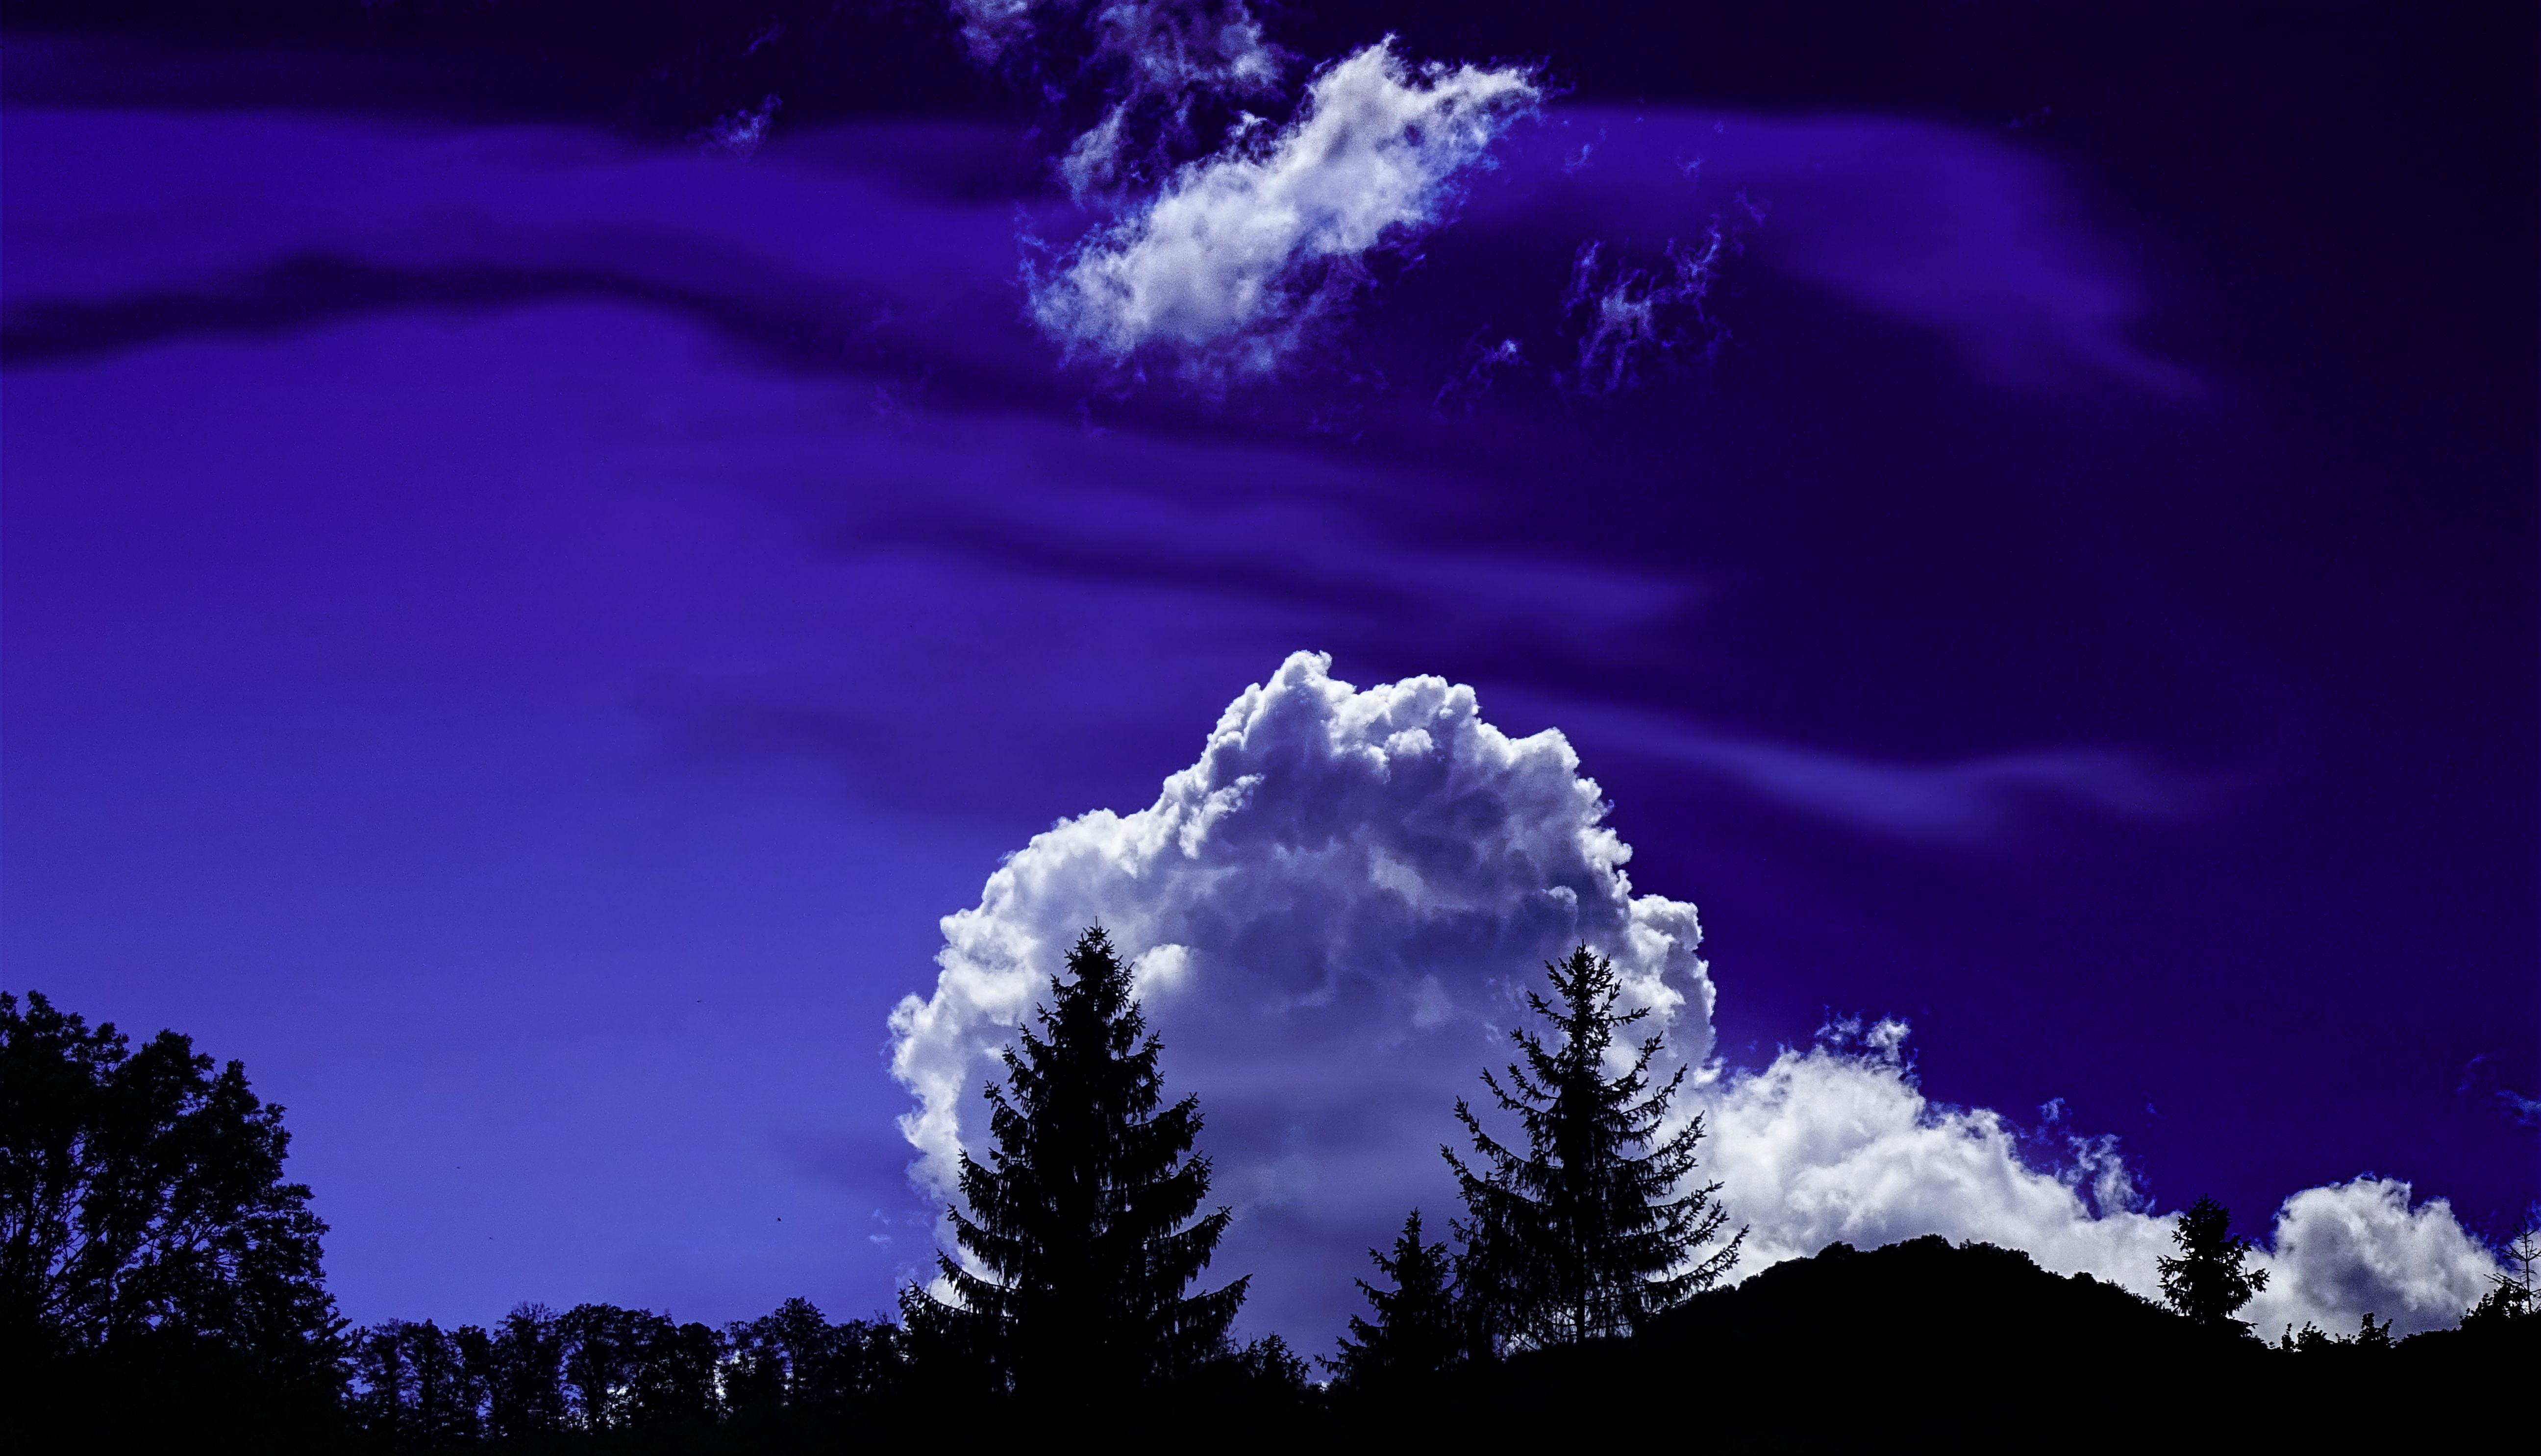 Trees under white clouds and blue sky photo